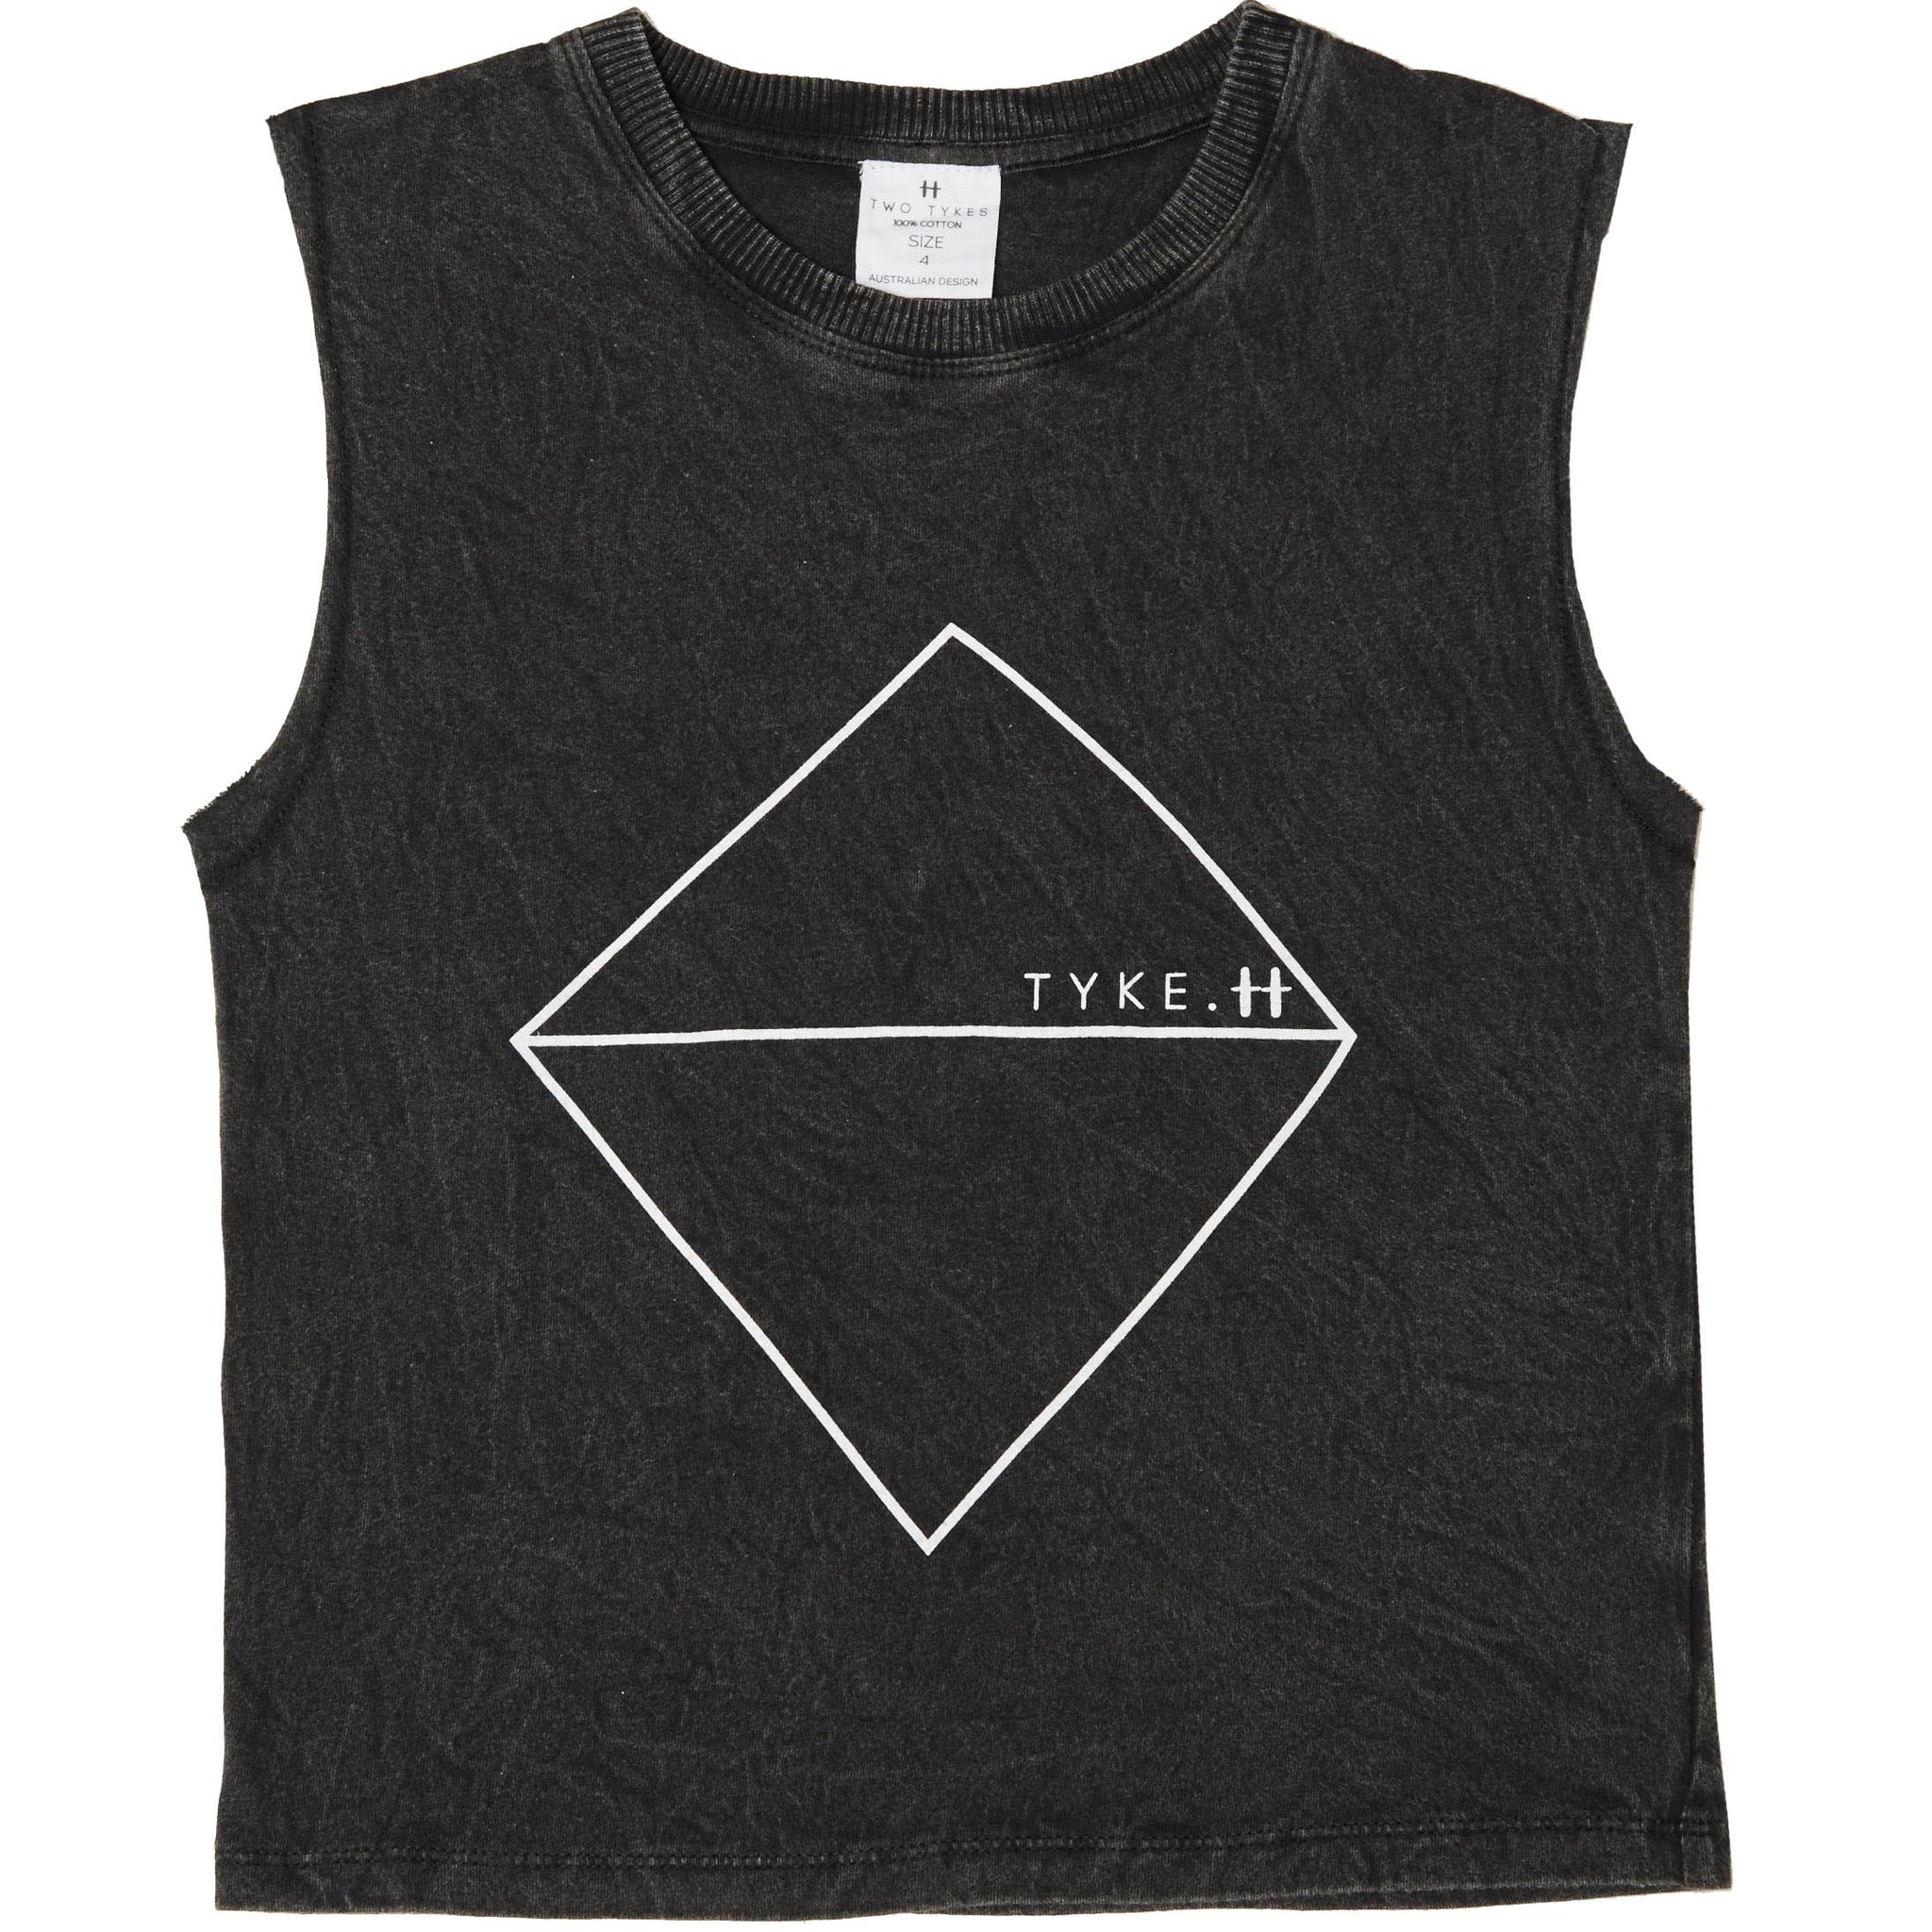 Tyke black stonewashed muscle tee